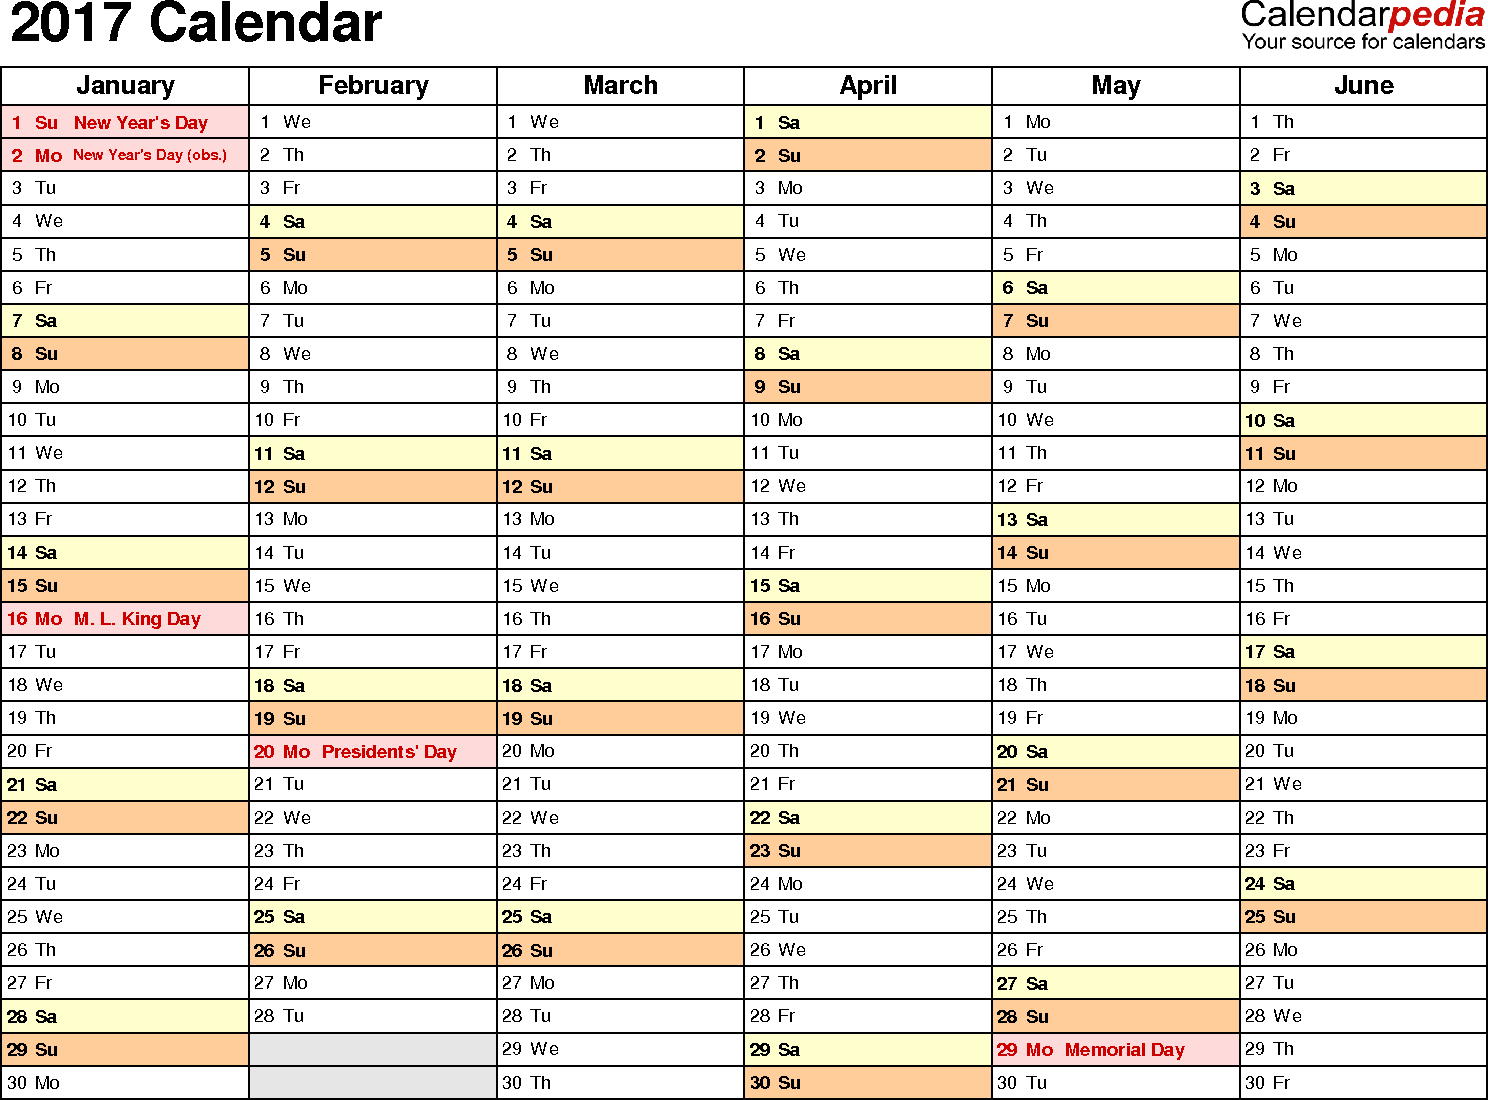 Ediblewildsus  Marvellous  Calendar  Download  Free Printable Excel Templates Xls With Lovable Template   Calendar For Excel Months Horizontally  Pages Landscape Orientation With Appealing How To Filter A Column In Excel Also Unlock Password Protected Excel Sheet In Addition Workout Excel Sheet And Excel  Essential Training As Well As Excel Center Lewisville Additionally Modern Business Statistics With Microsoft Excel From Calendarpediacom With Ediblewildsus  Lovable  Calendar  Download  Free Printable Excel Templates Xls With Appealing Template   Calendar For Excel Months Horizontally  Pages Landscape Orientation And Marvellous How To Filter A Column In Excel Also Unlock Password Protected Excel Sheet In Addition Workout Excel Sheet From Calendarpediacom